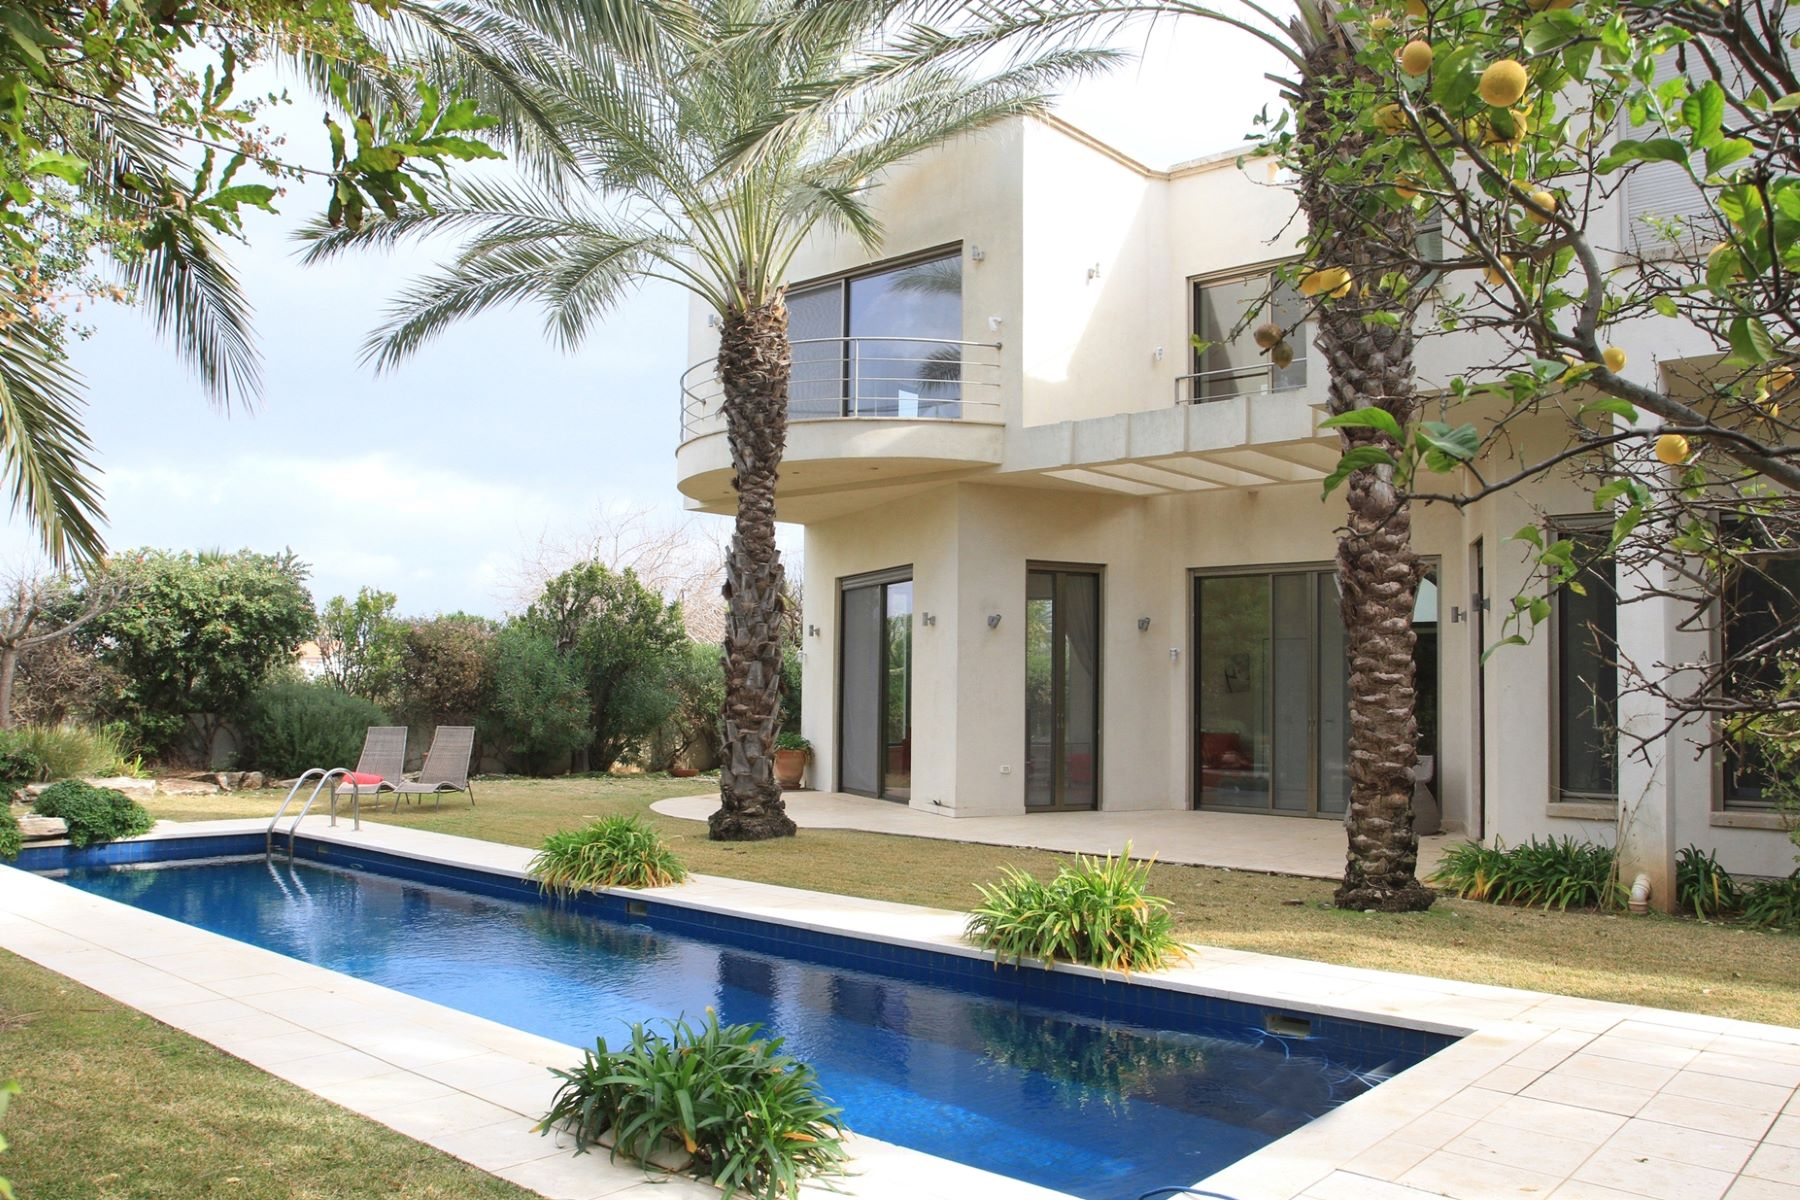 Single Family Home for Rent at Ancient Caesarea Experience Caesarea, Israel 00000 Israel